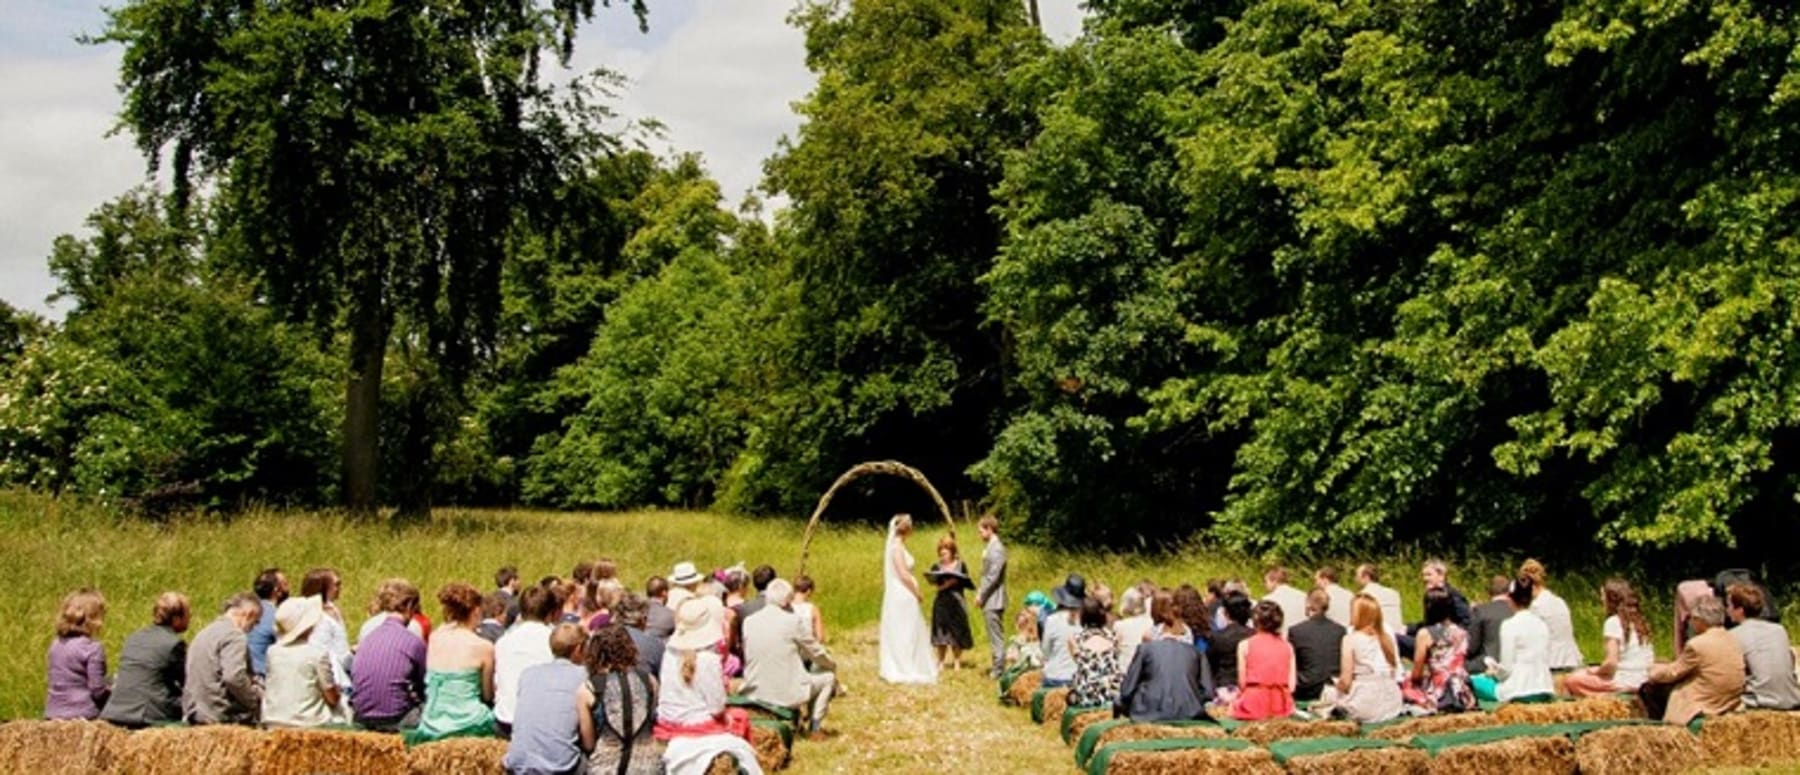 Cambridge Outdoor Wedding